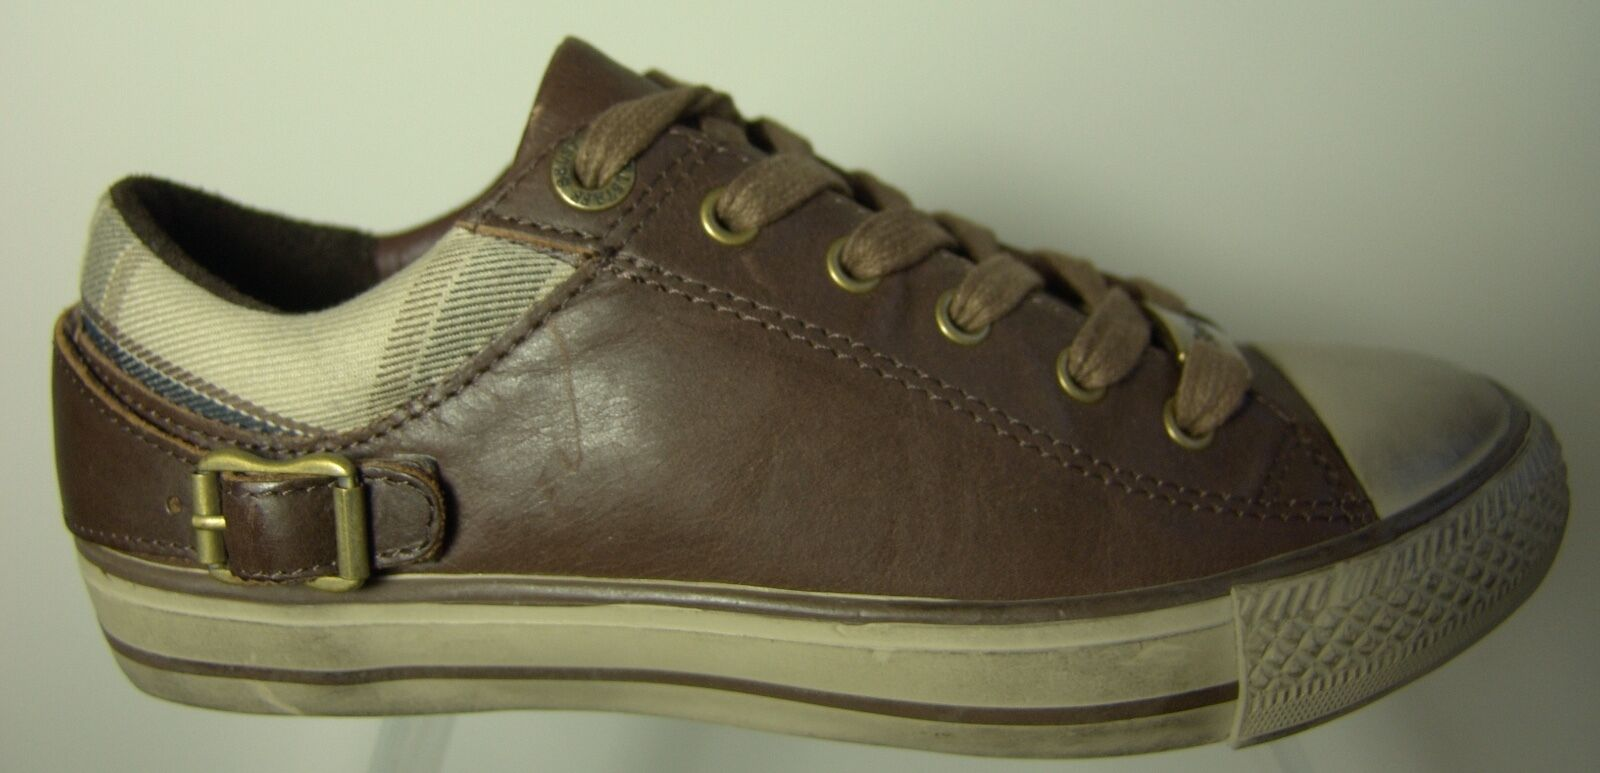 Authentic Belstaff Jair Low Lady  Chaussures  Sneakers EU